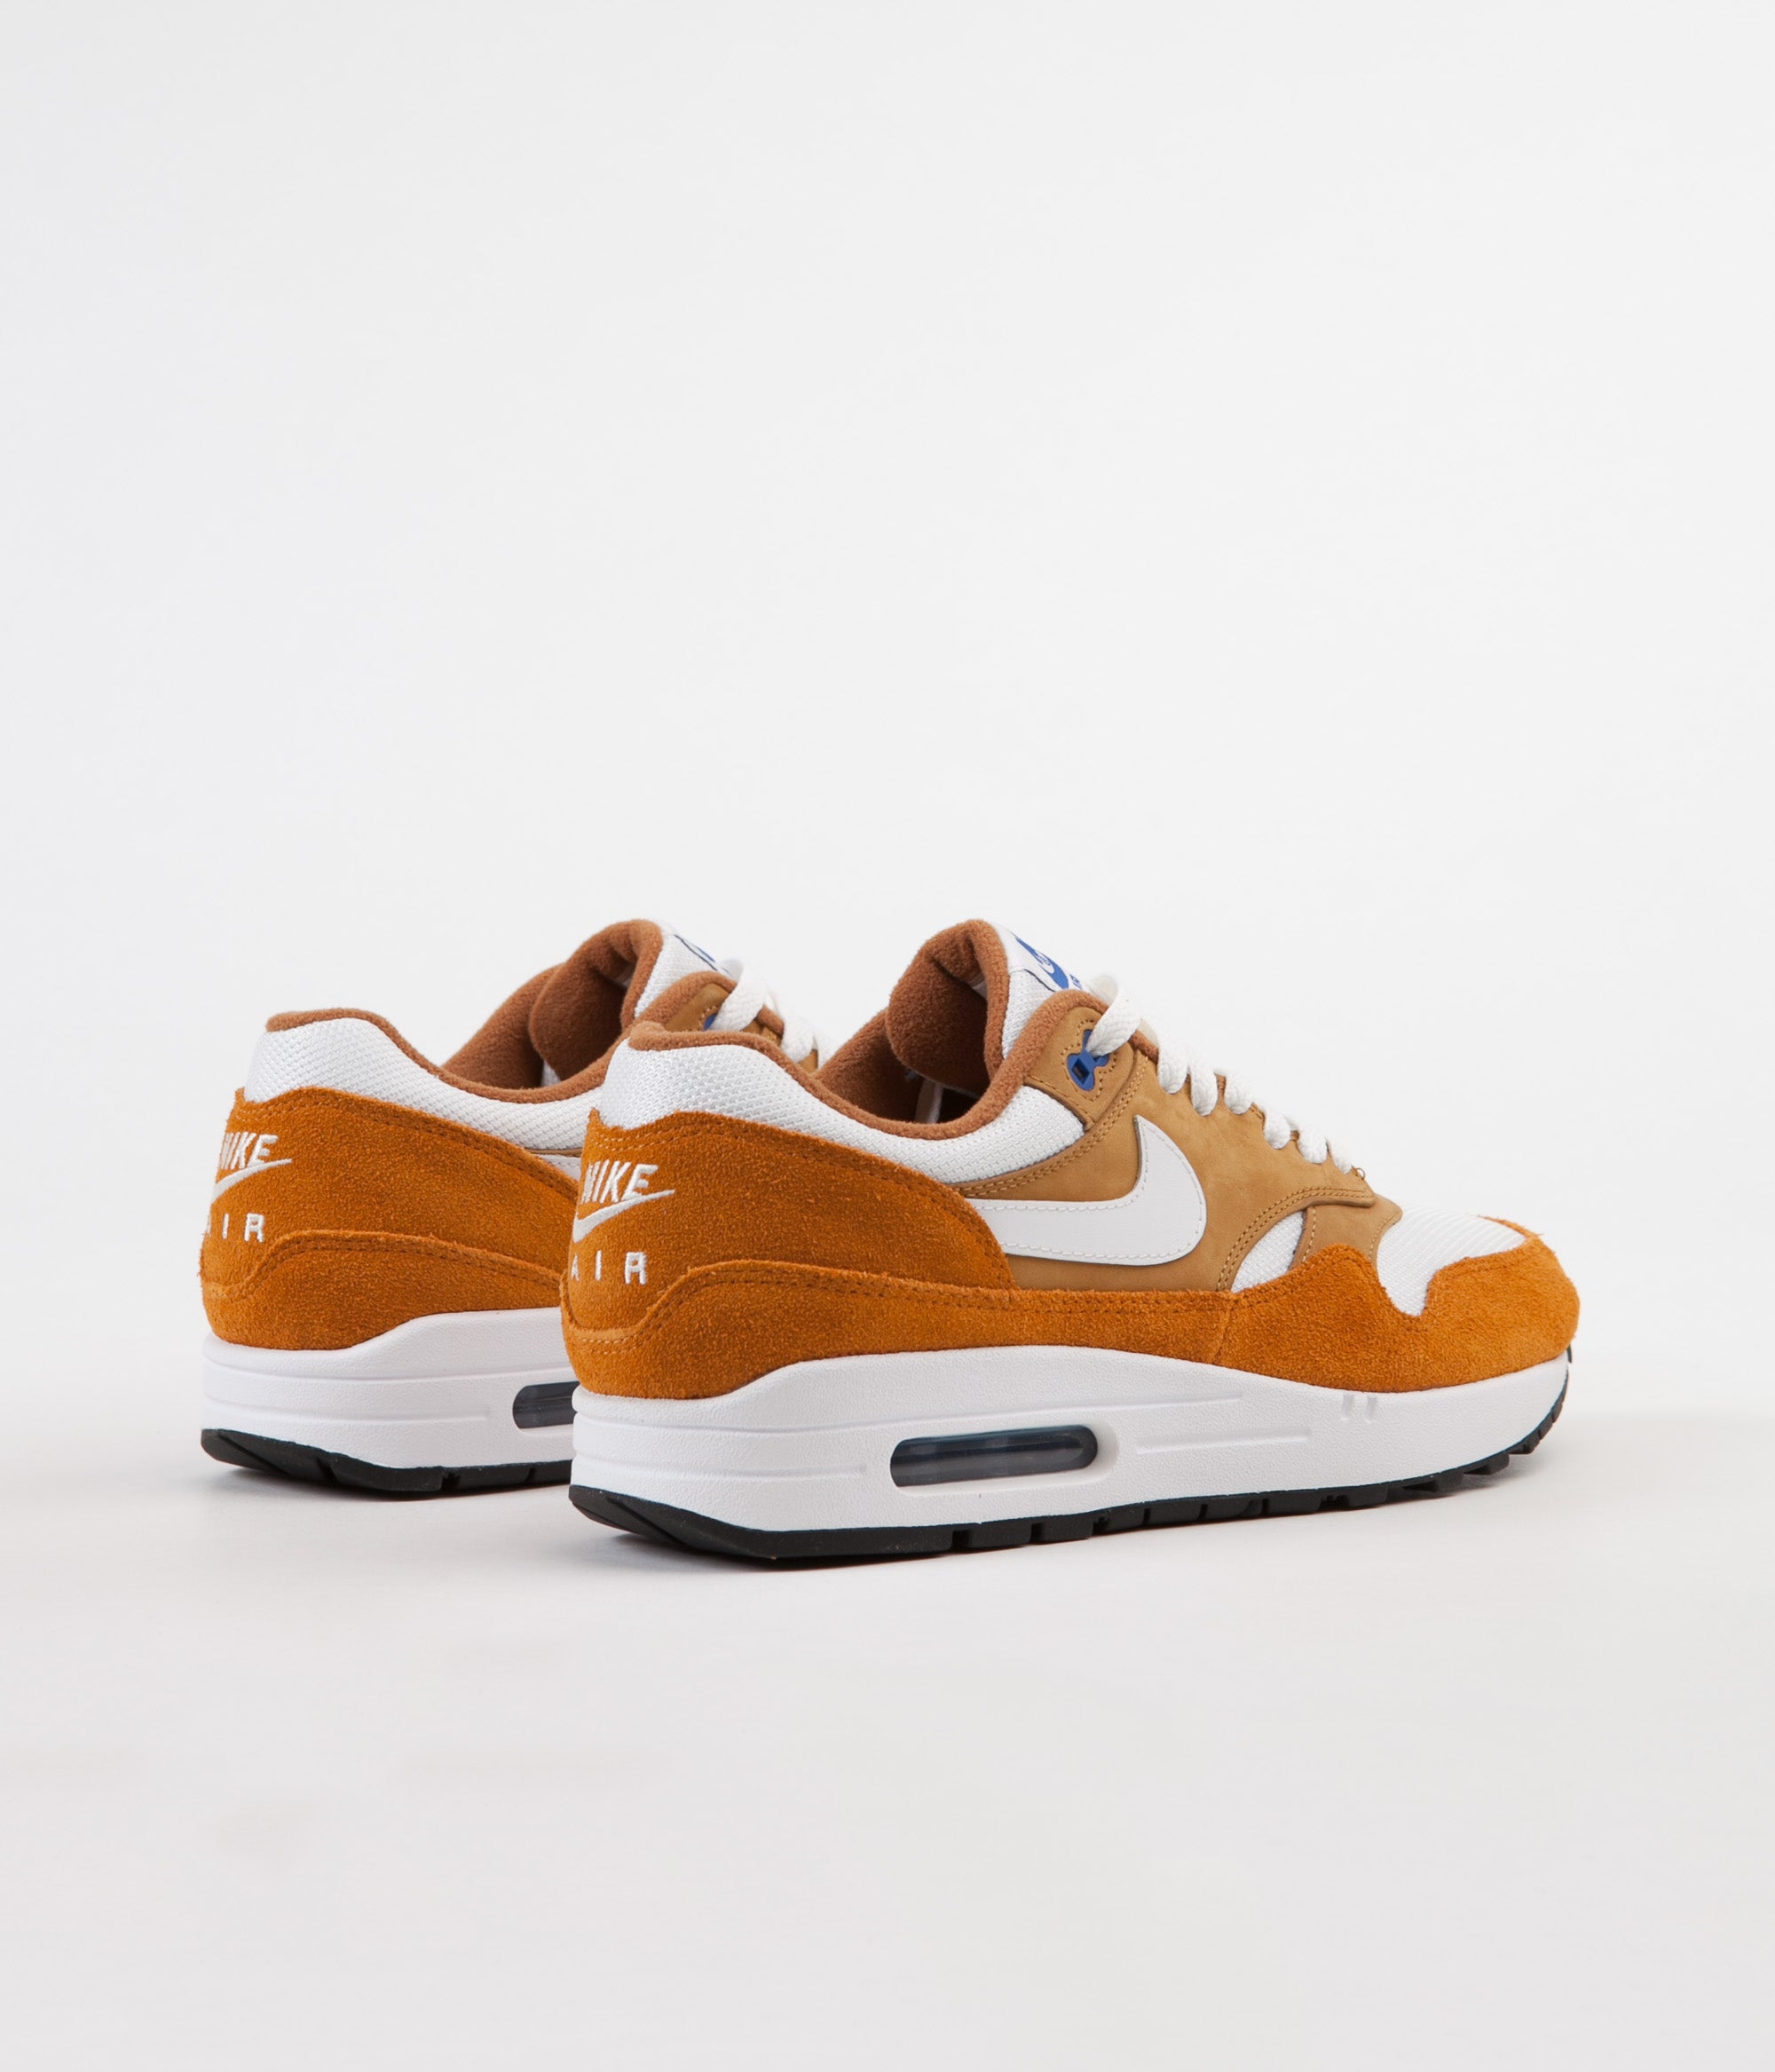 Nike Air Max 1 Premium Retro Shoes Dark Curry True White